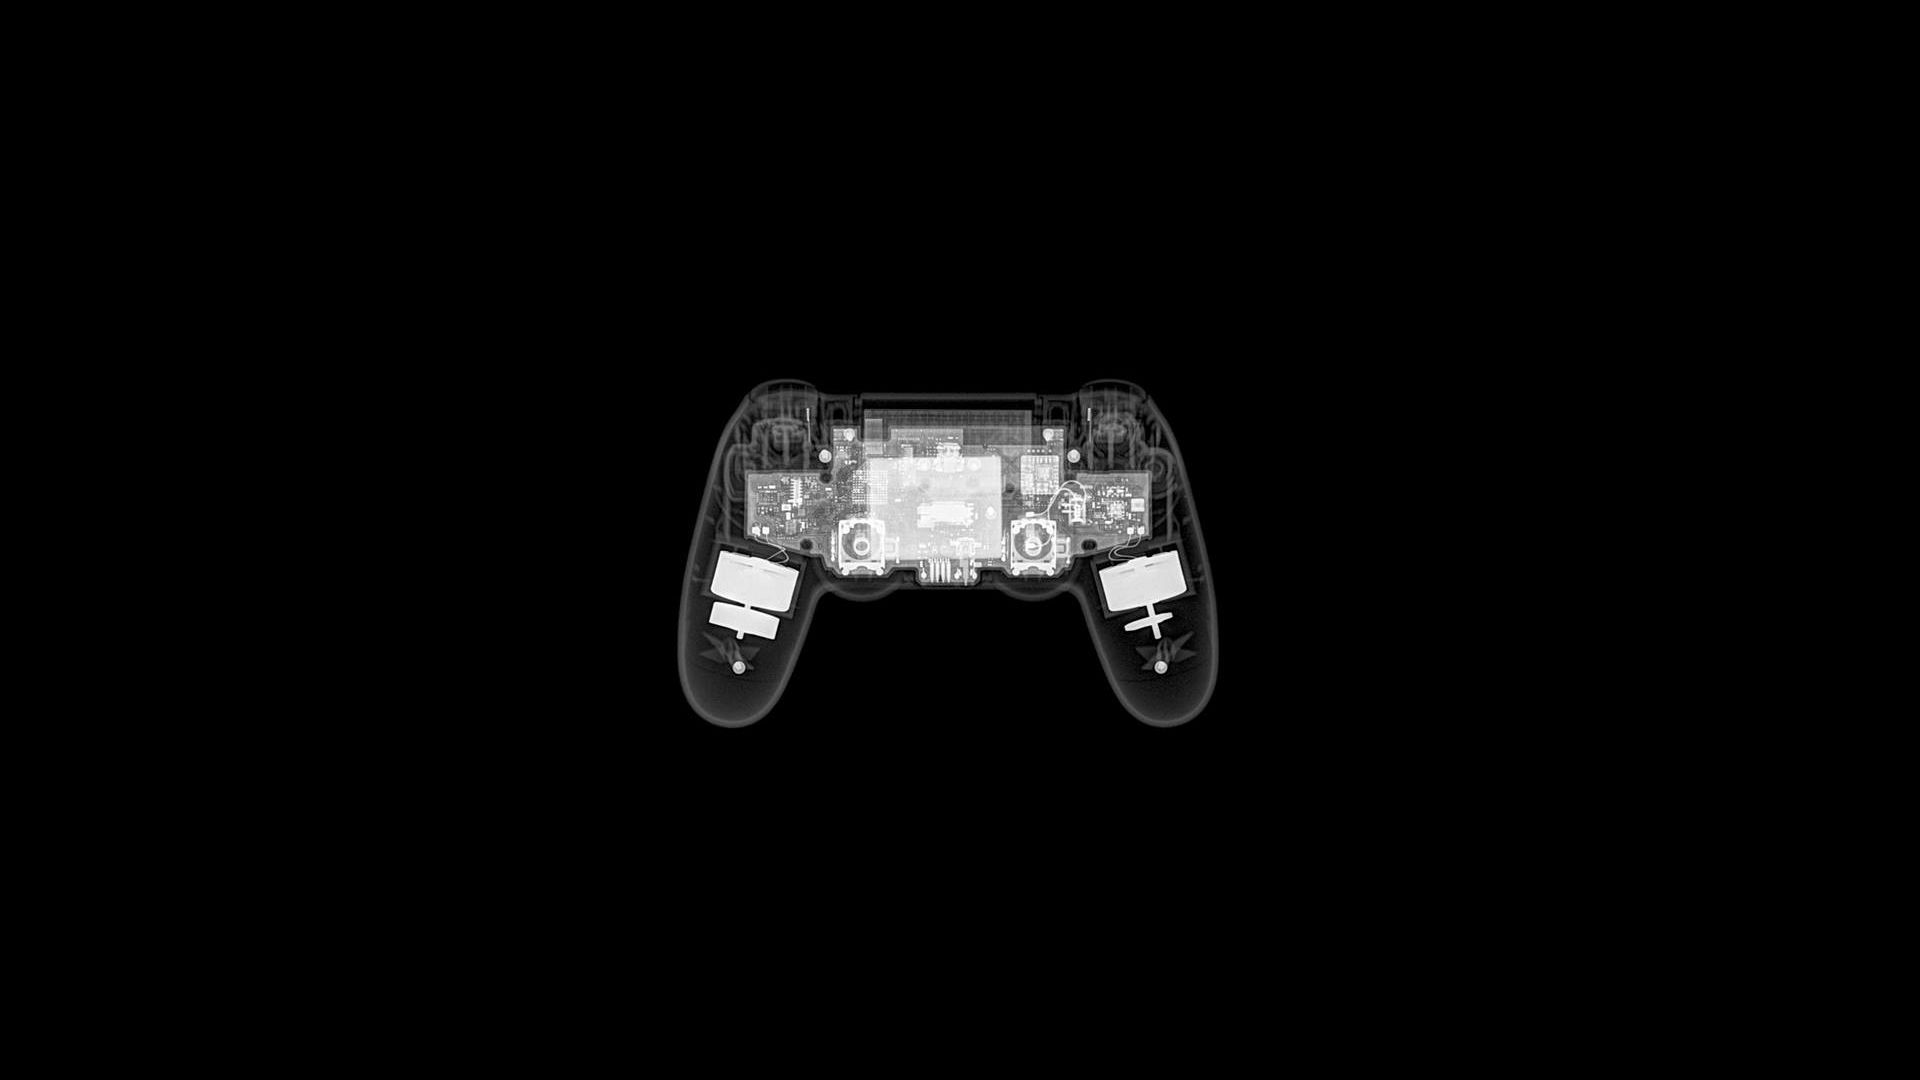 Gaming Controllers Wallpaper Widescreen For Free Wallpaper Game Controller Iphone Wallpaper Images Minimalist Iphone